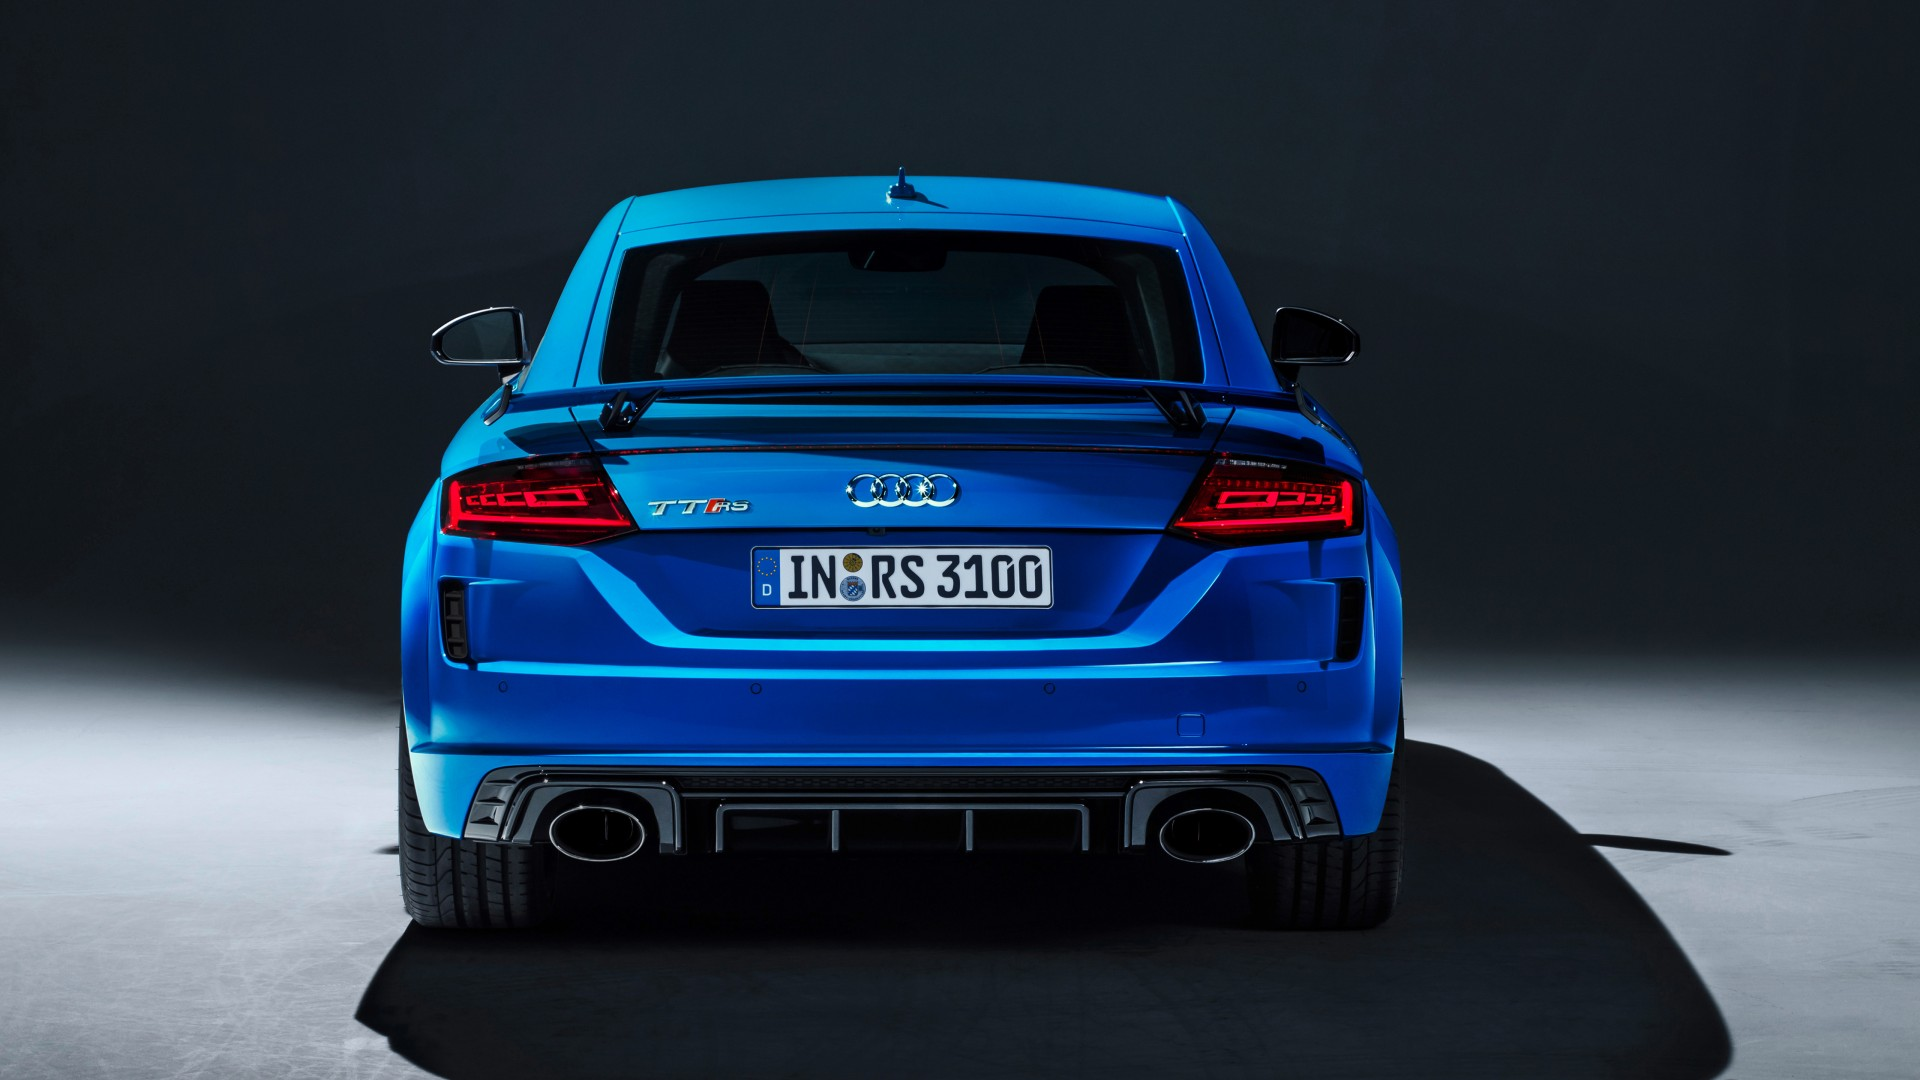 Apple Sport Chevrolet >> Audi TT RS Coupe 2019 5K Wallpaper | HD Car Wallpapers ...